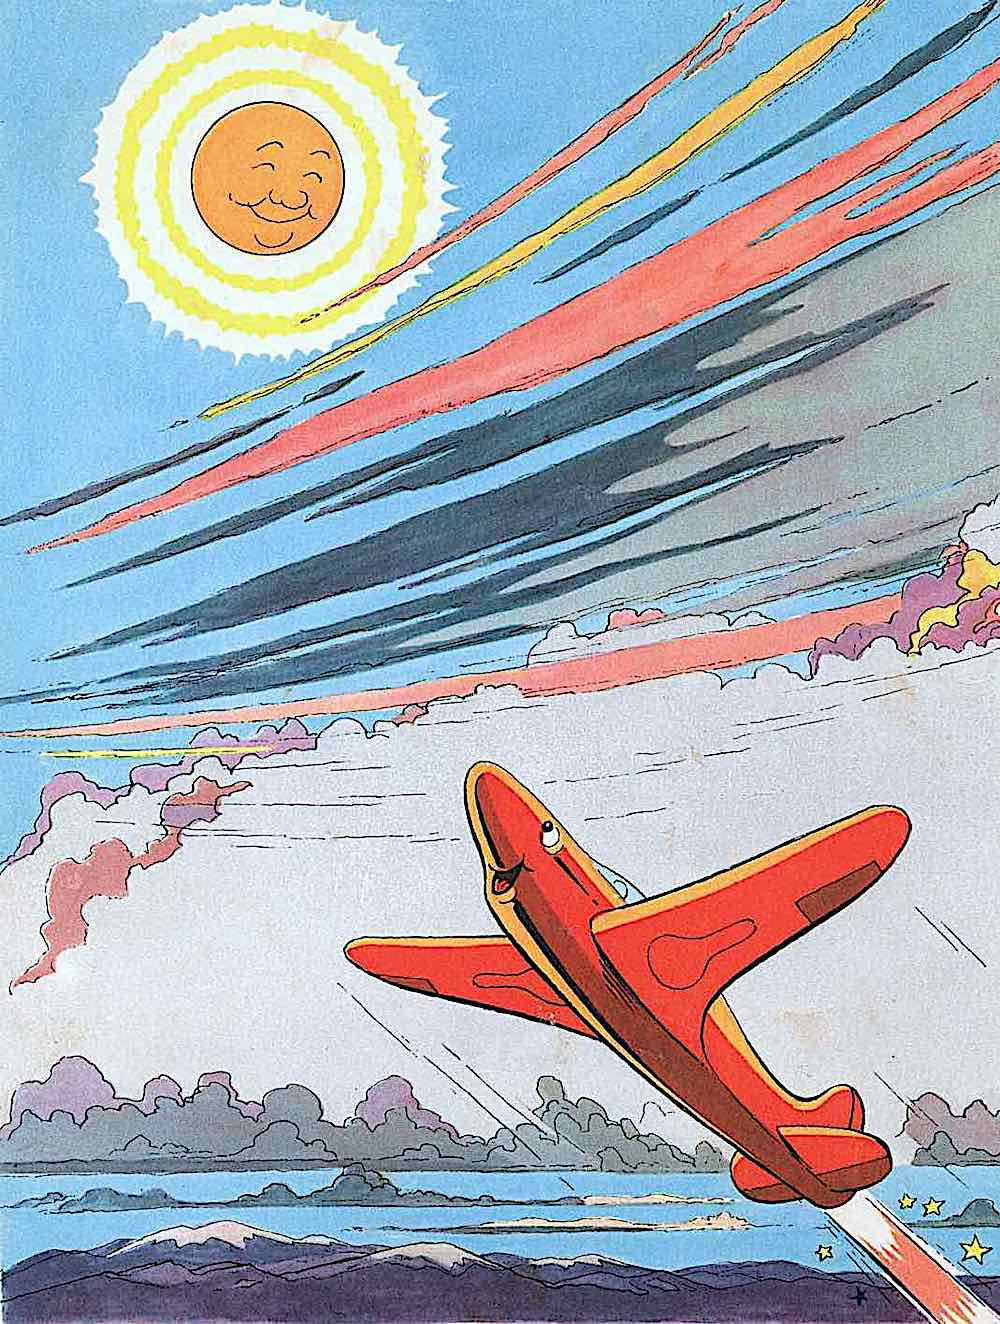 a Paul Pinson 1950 children's book illustration of a happy flying airplane meeting the smiling sun